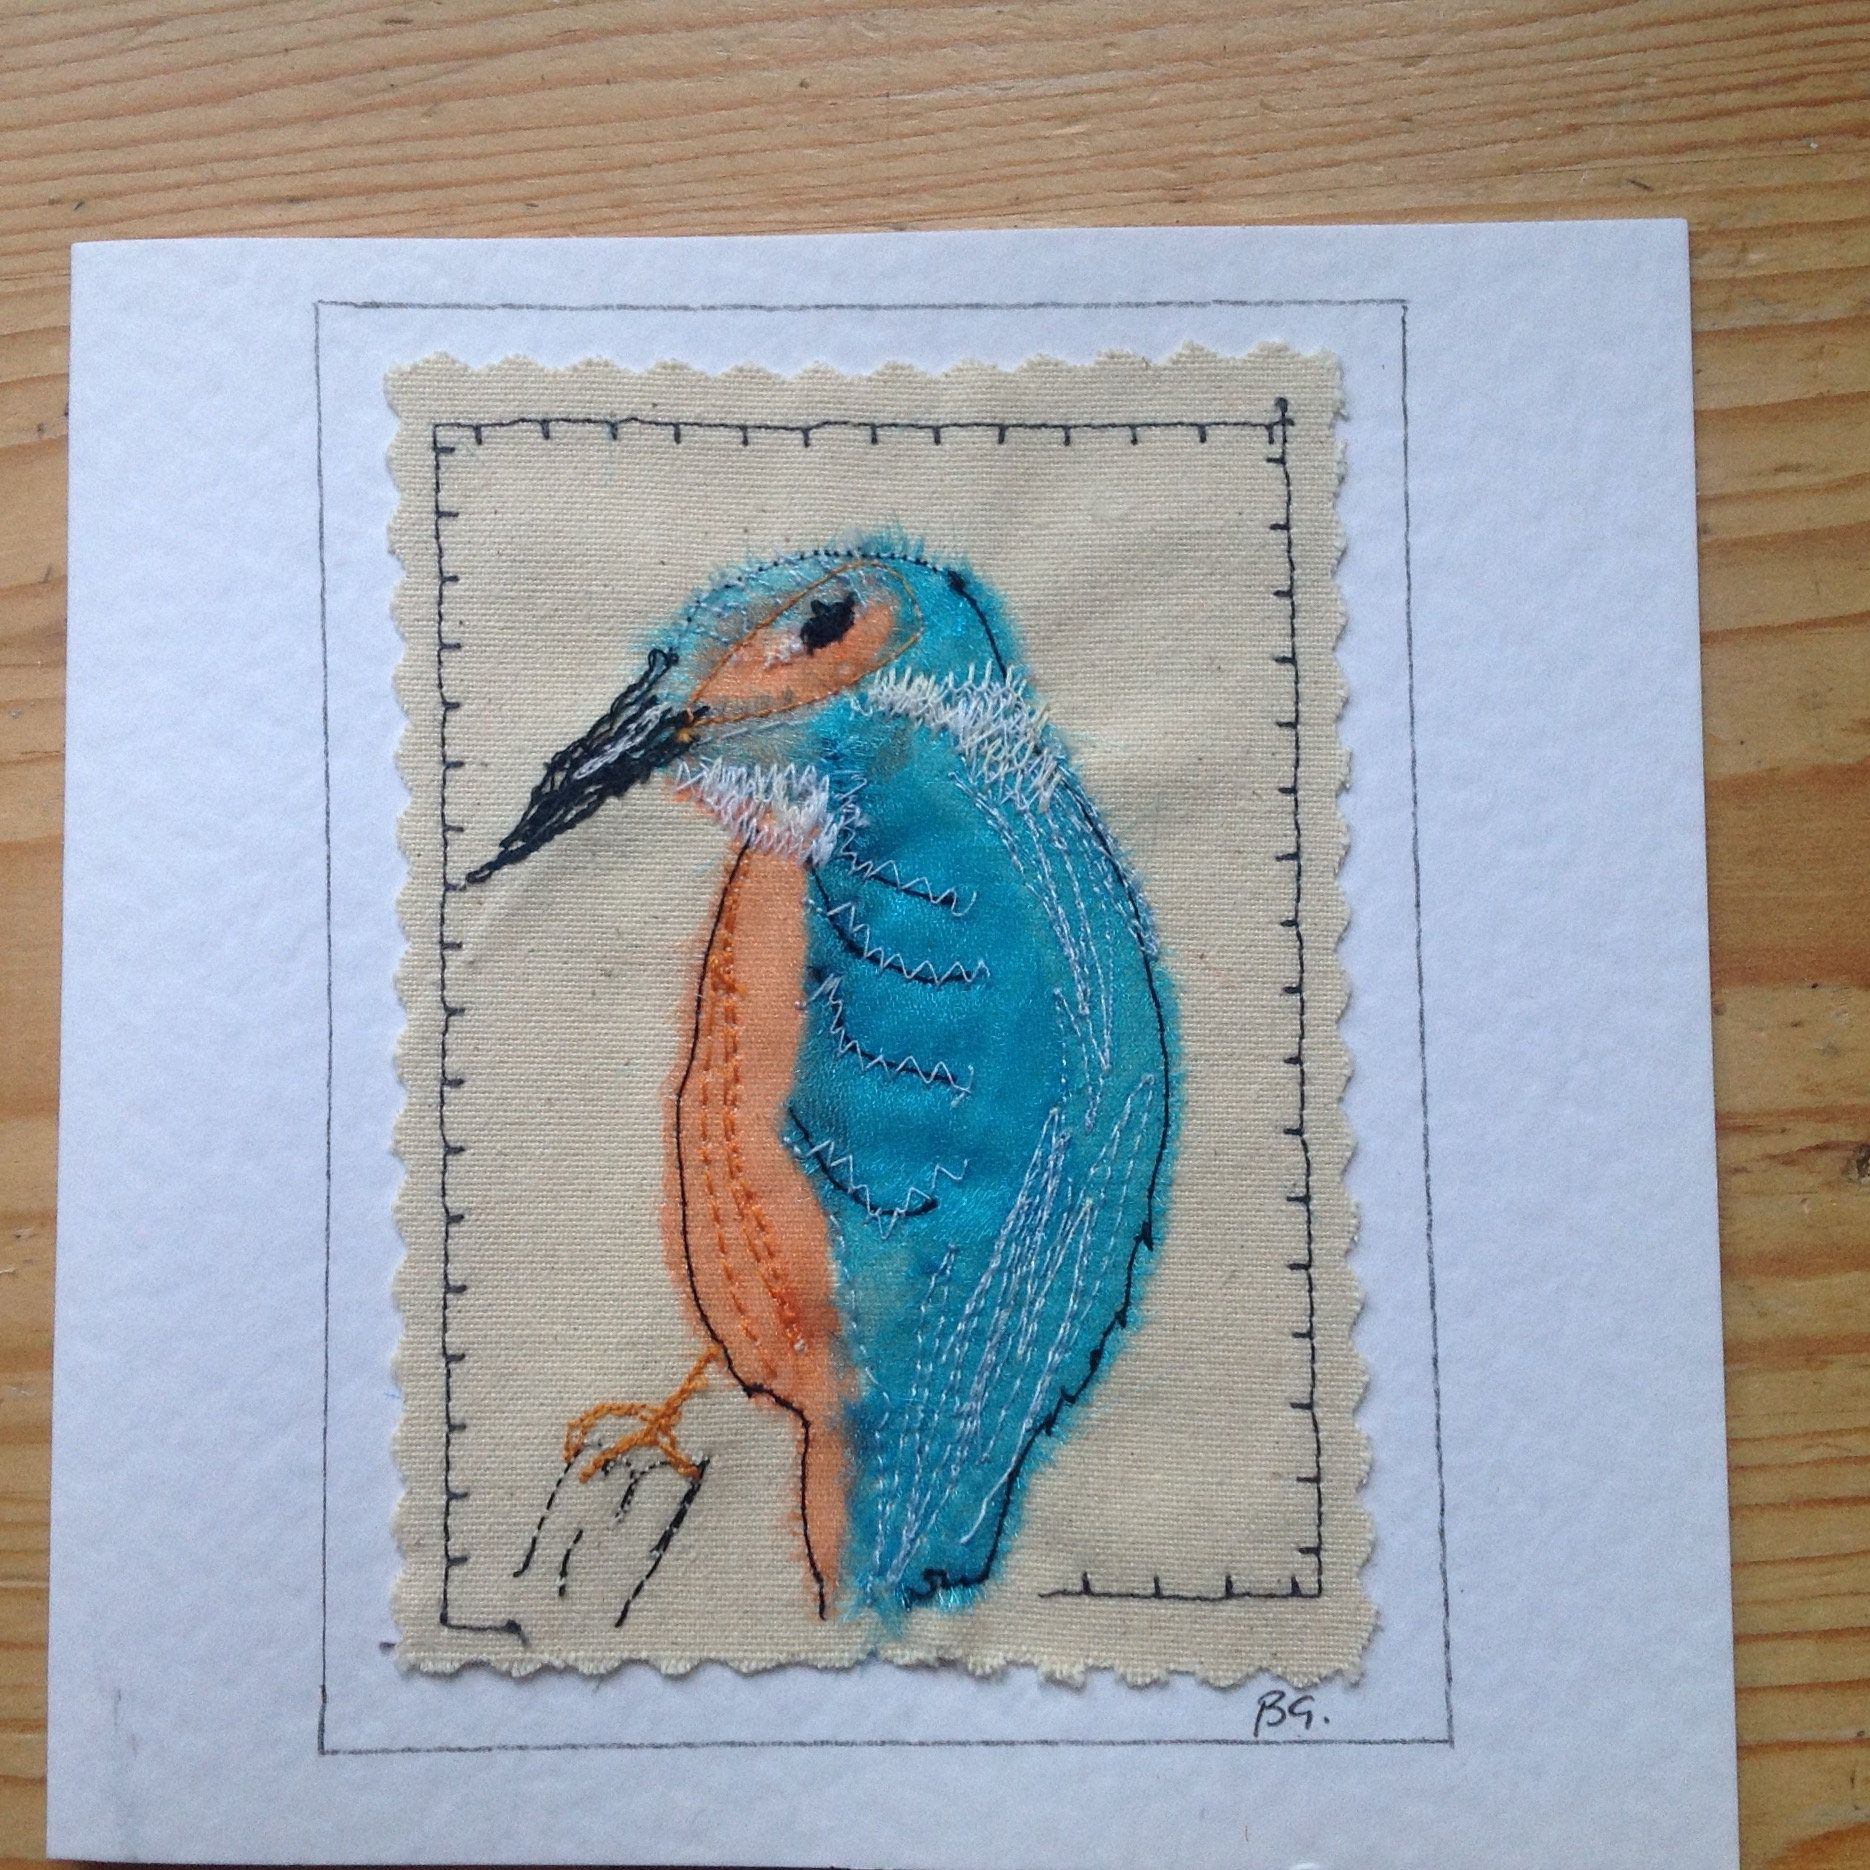 Embroidered Kingfisher Bird Card Suitable For Birthday Retirement Thank You Appliqued And Embroidered Personalised With Bird Cards Kingfisher Bird Applique